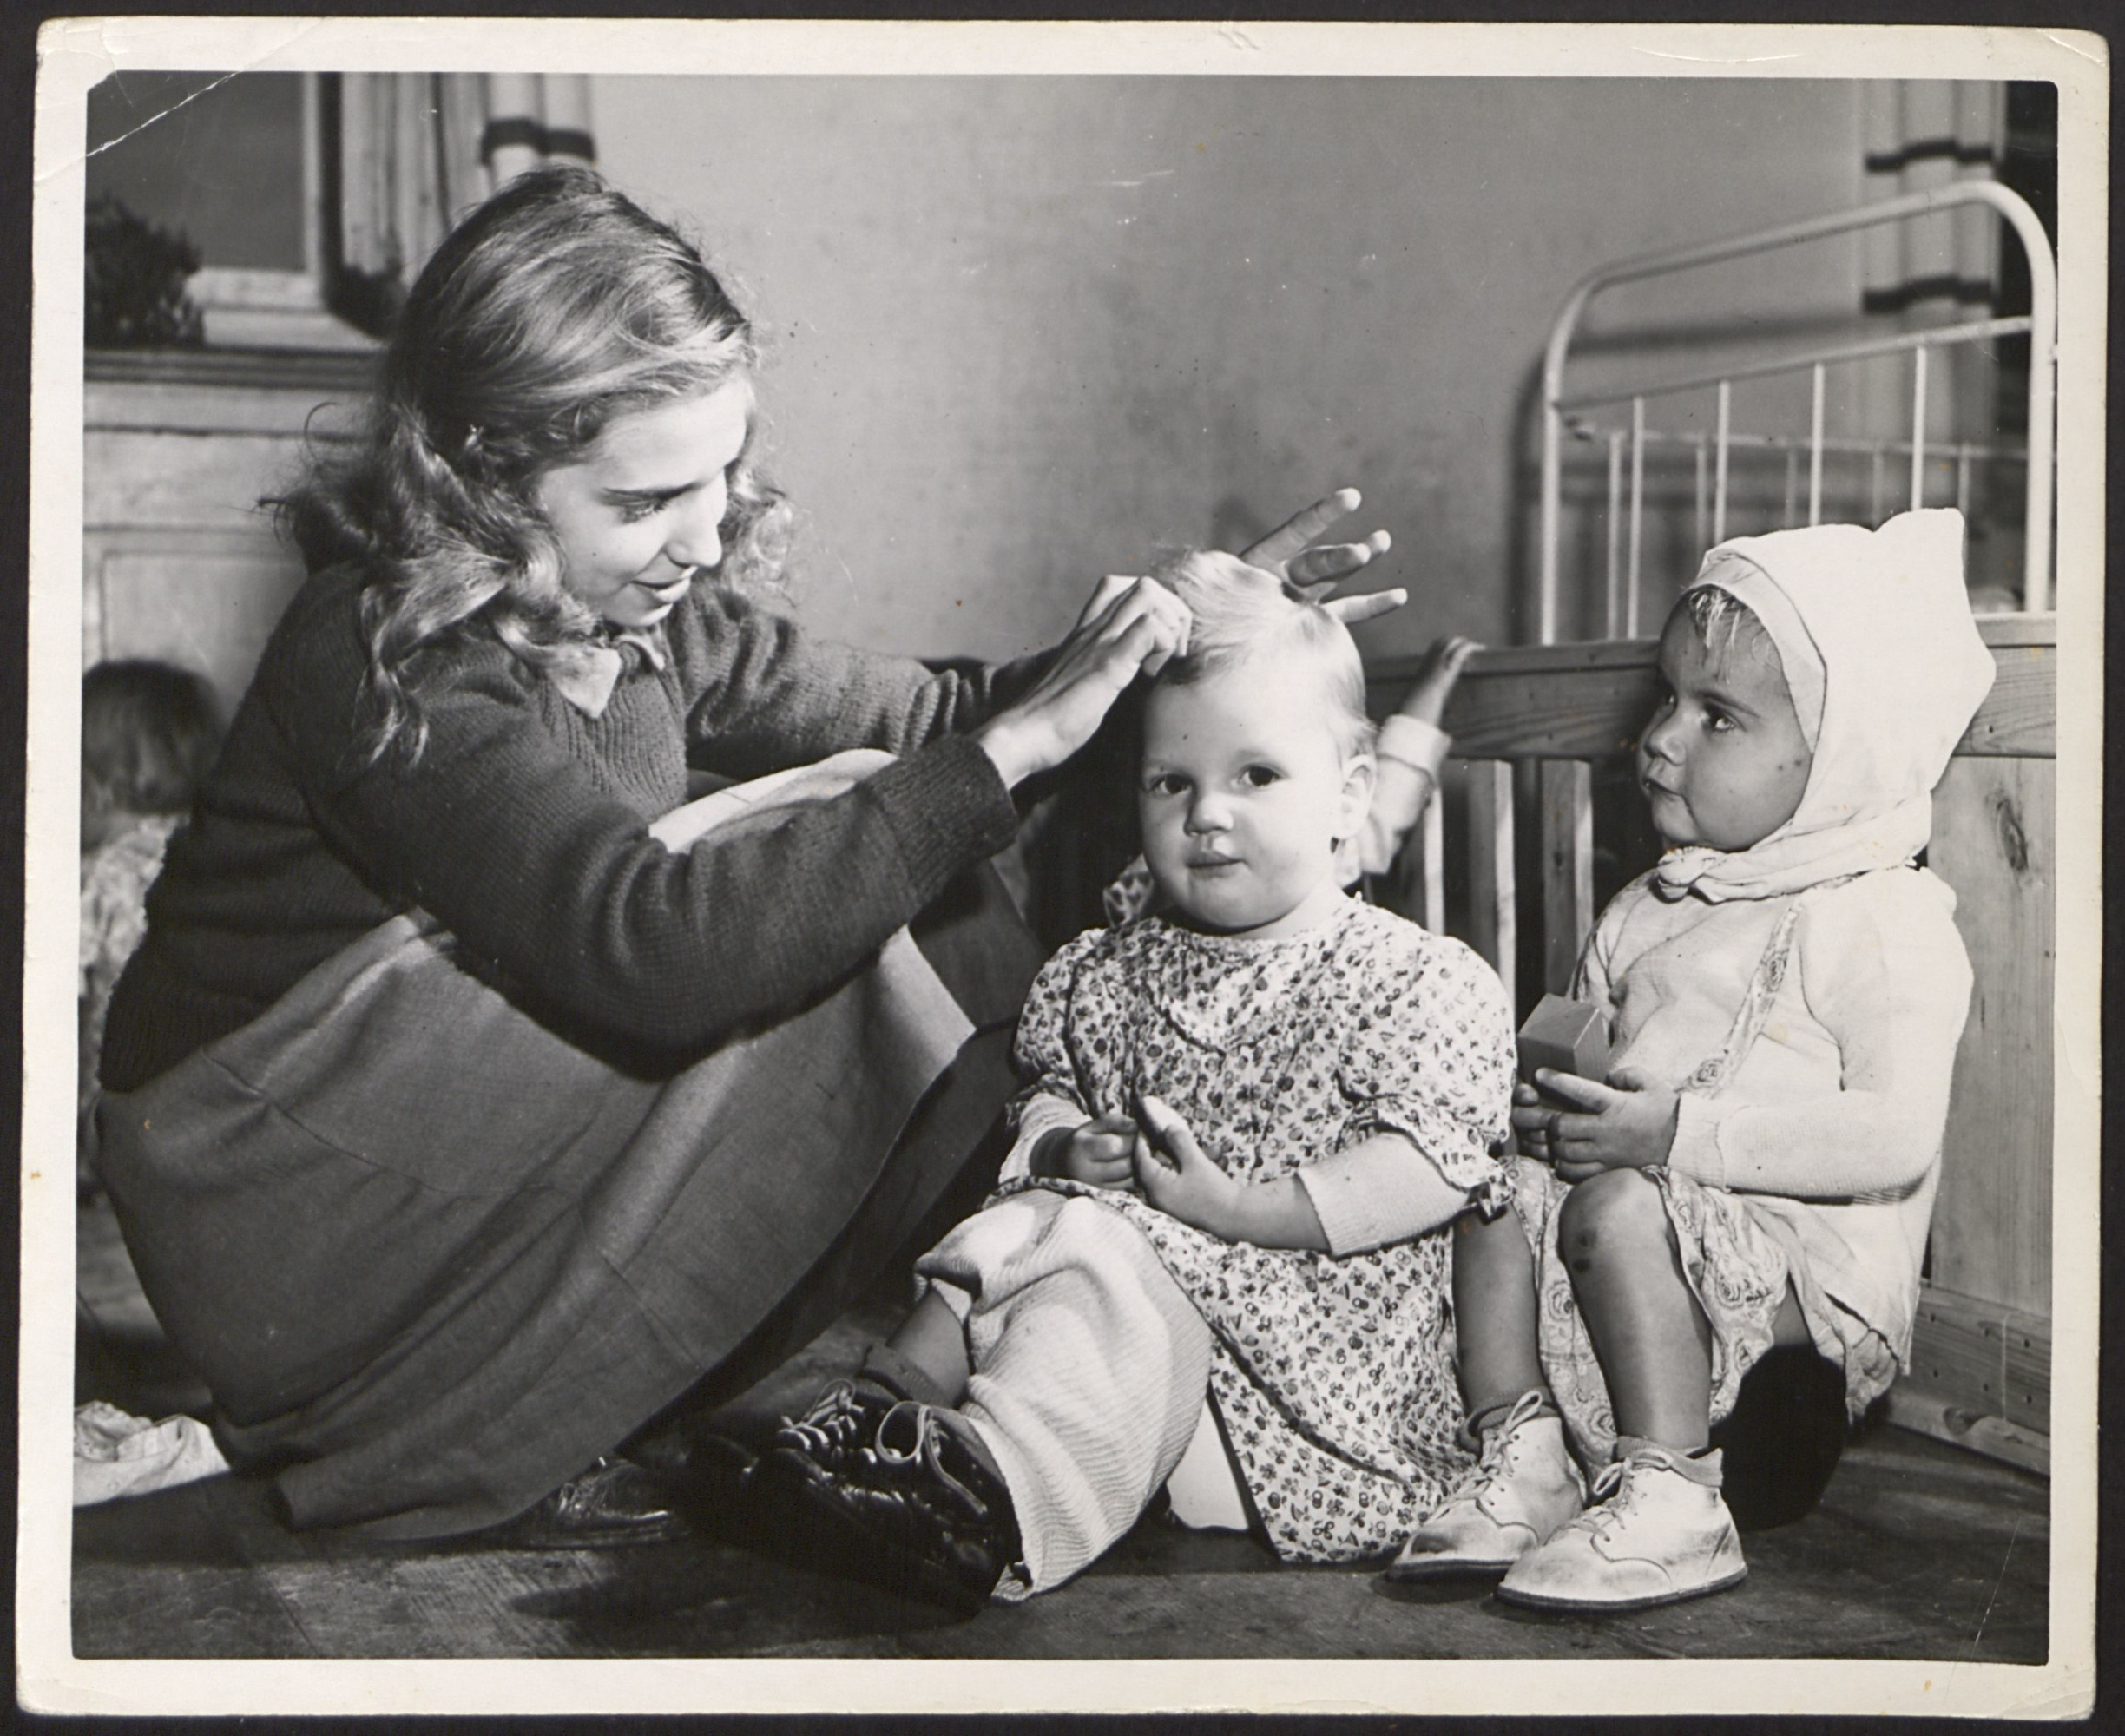 An older girl combs the hair of an infant at the Kloster Indersdorf children's DP center.